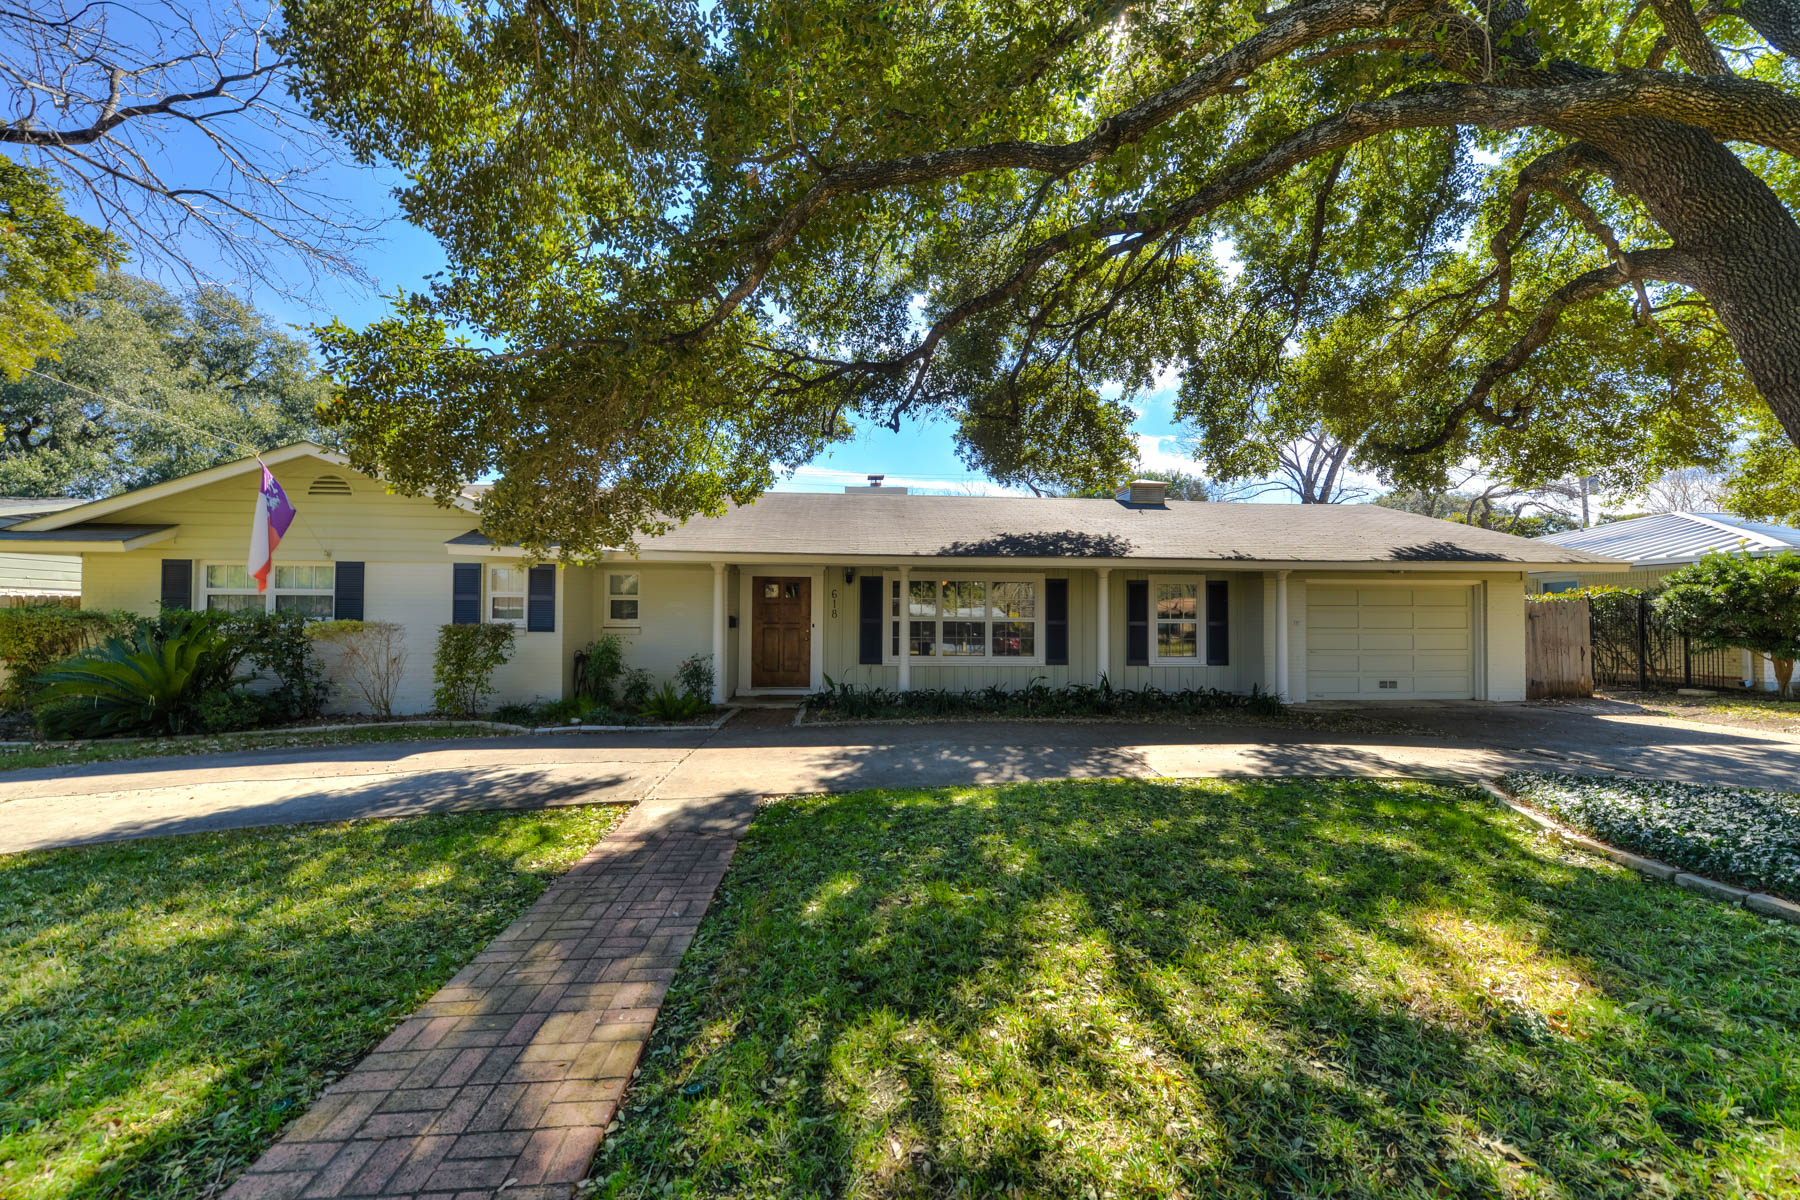 Single Family Home for Sale at Ideal Family Home in Northwood 618 Rockhill Dr San Antonio, Texas 78209 United States